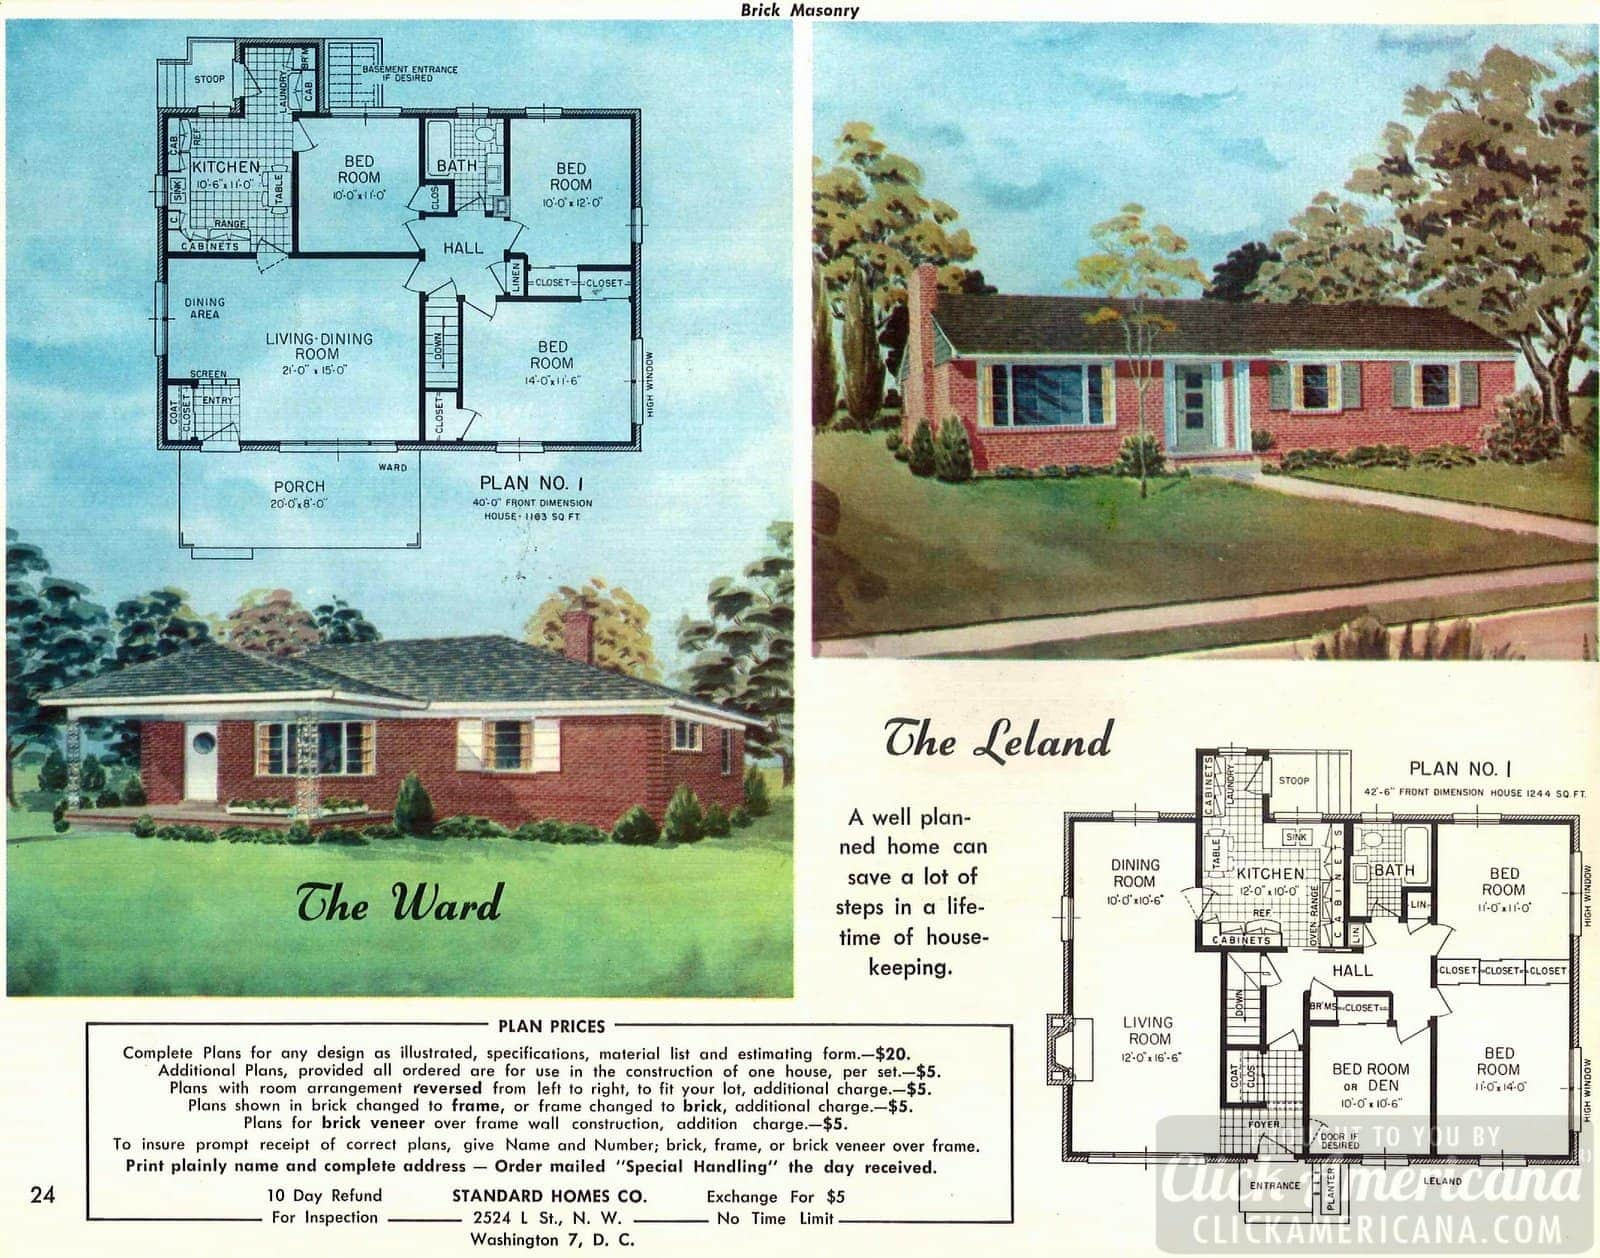 The Leland & The Ward: Home designs from 1958